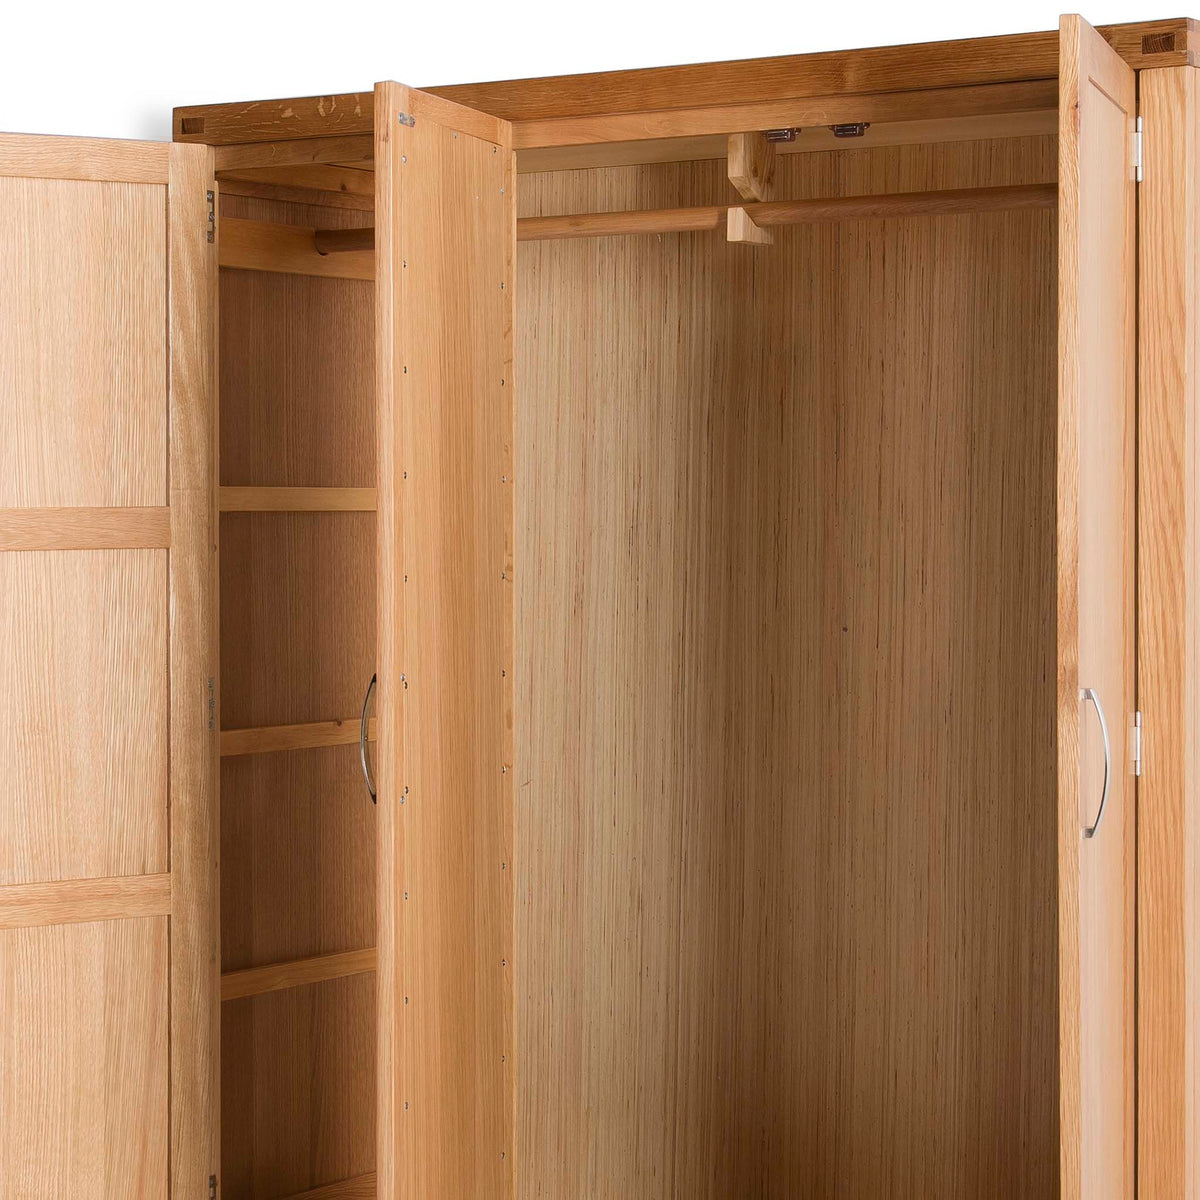 Abbey Light Oak 3 Door Triple Wardrobe with Drawers - Close up of inside wardrobe  and hanging rail